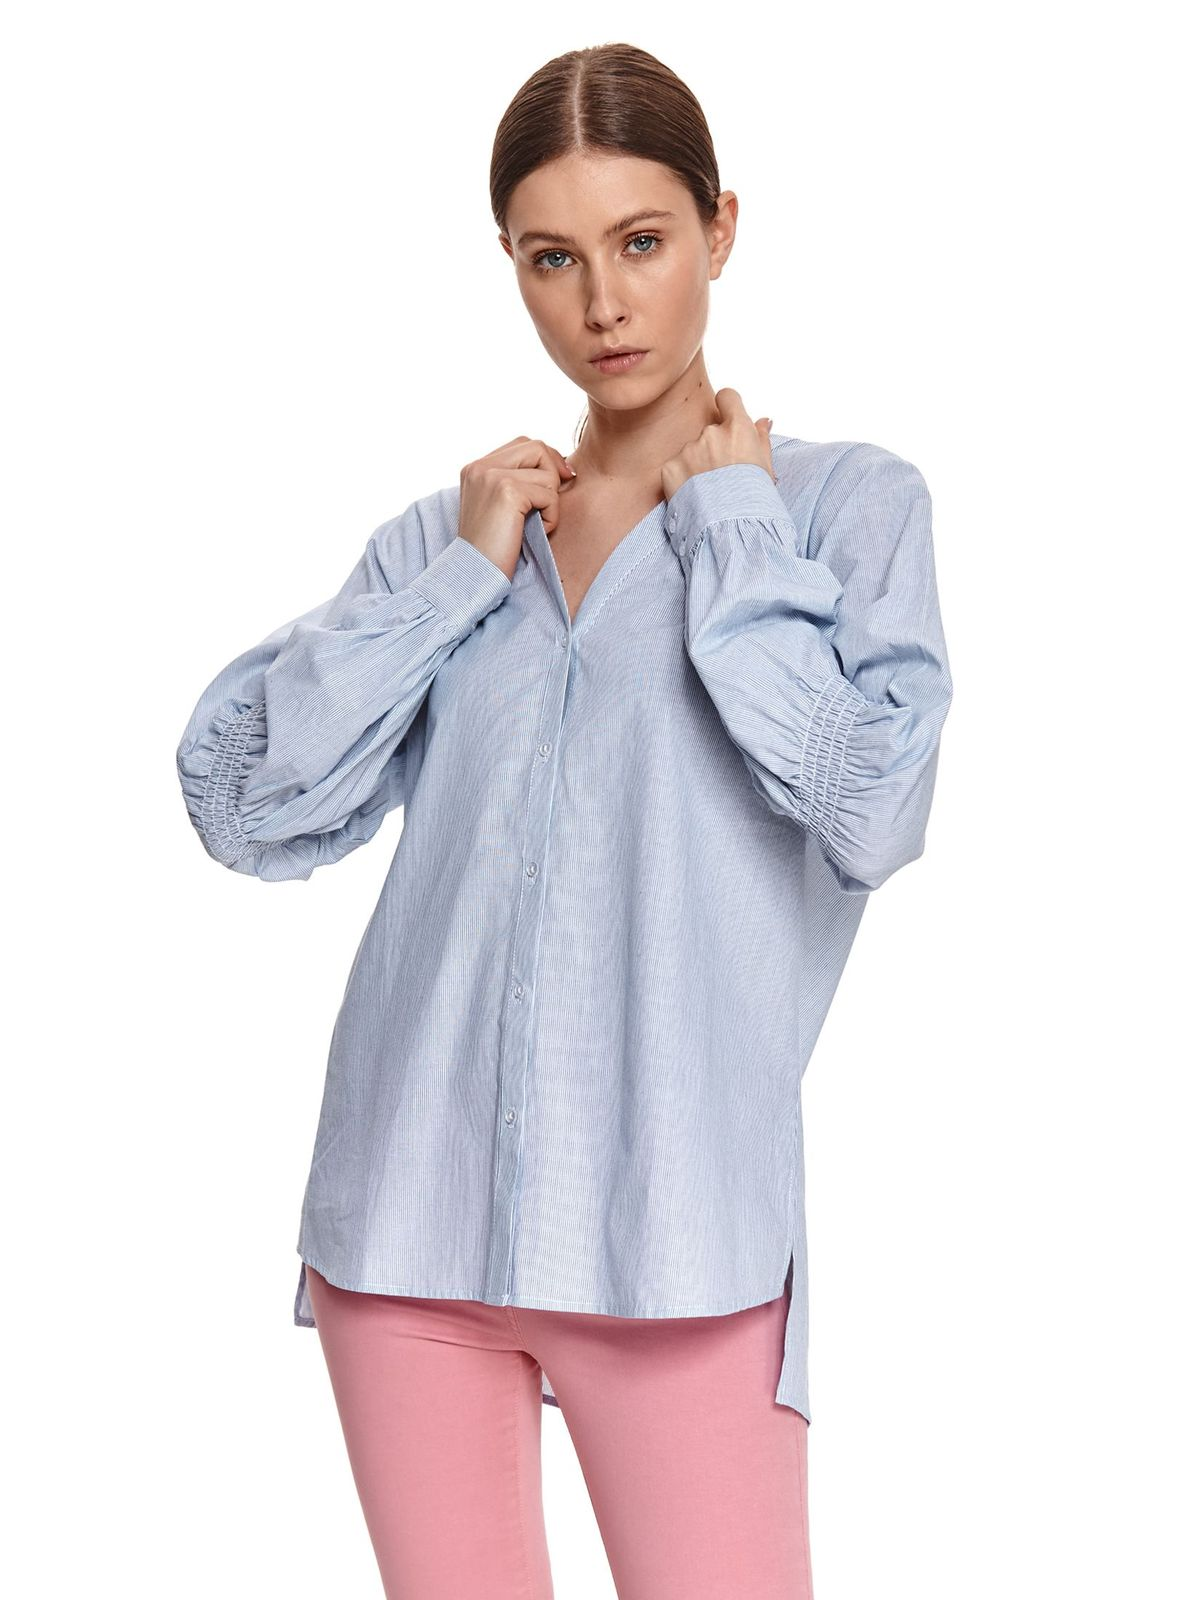 Lightblue women`s shirt loose fit with v-neckline tied with bow